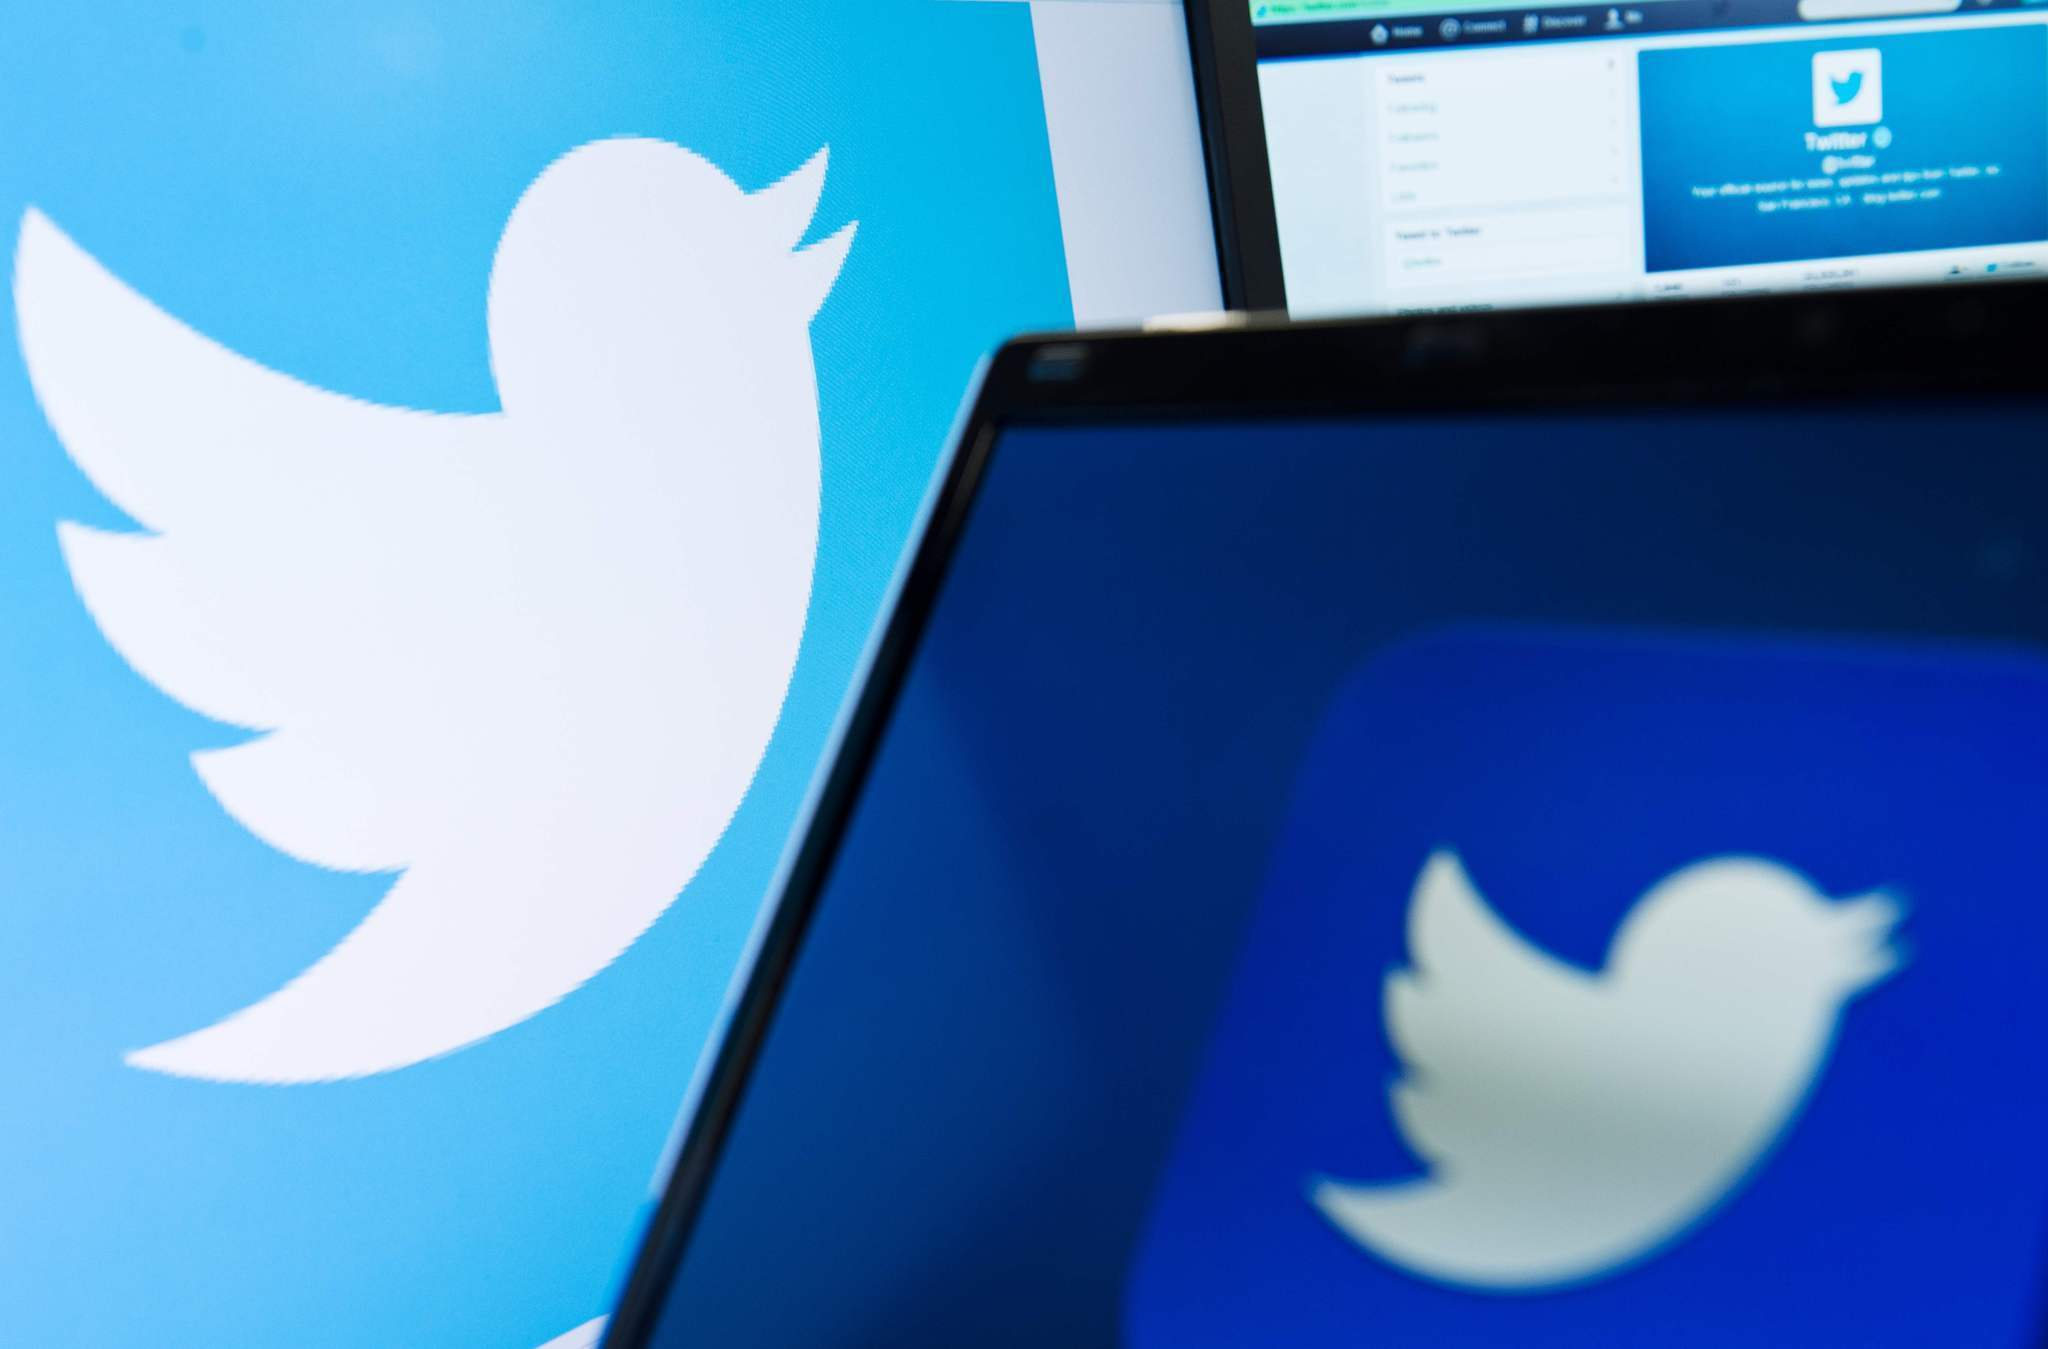 Twitter Opens Up Verified Accounts To Everyone Heres How To Get